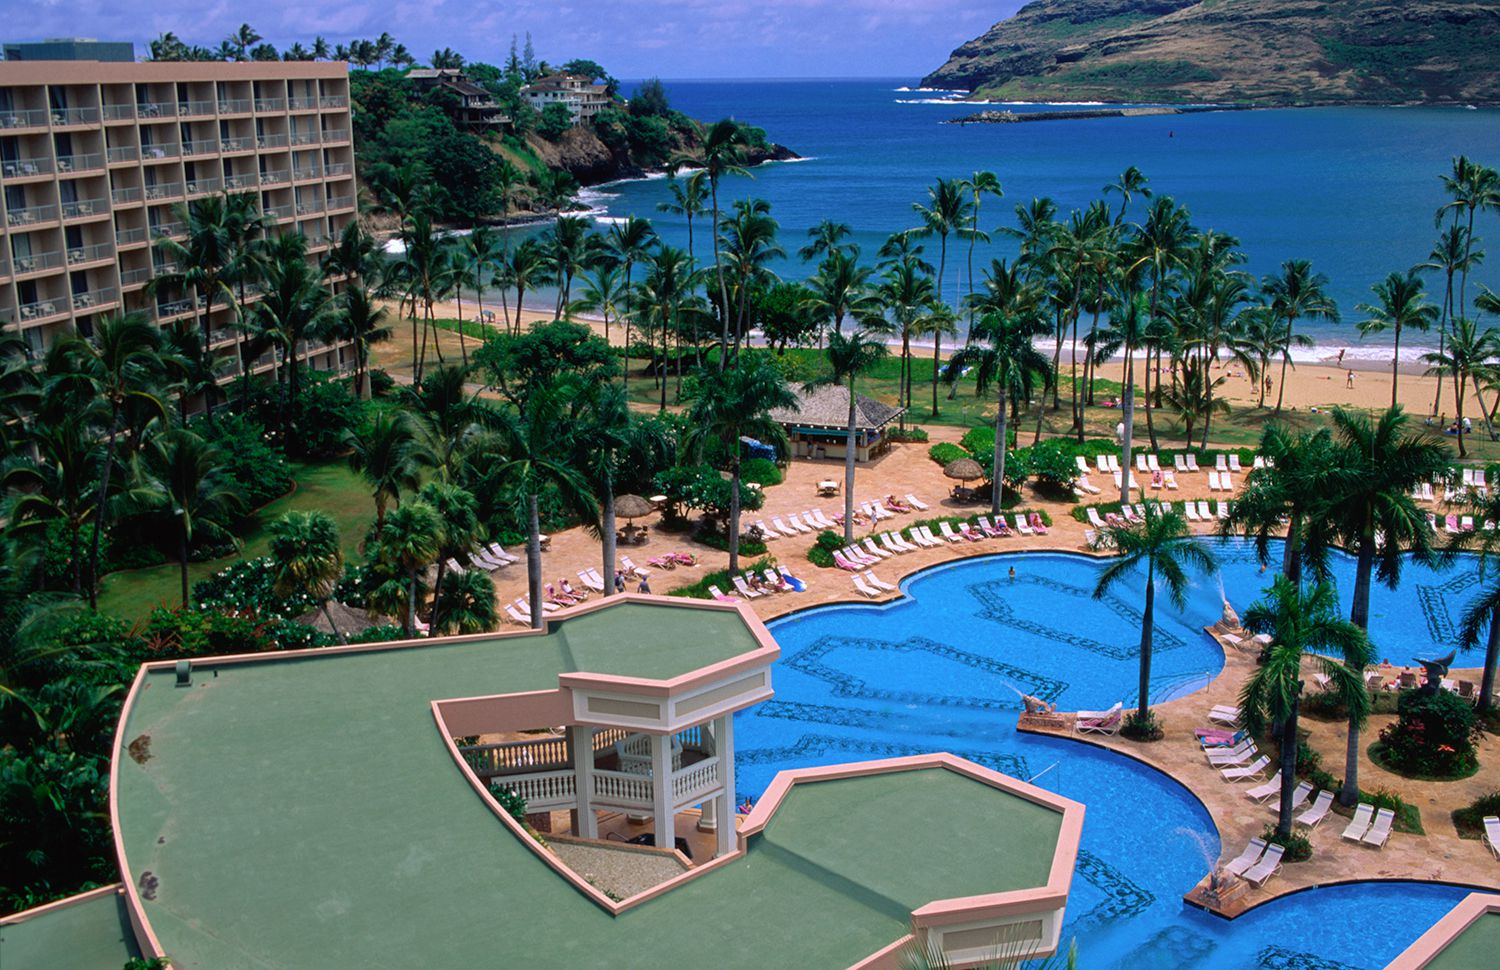 Canyon State Auto >> Kauai Marriott Resort and Beach Club